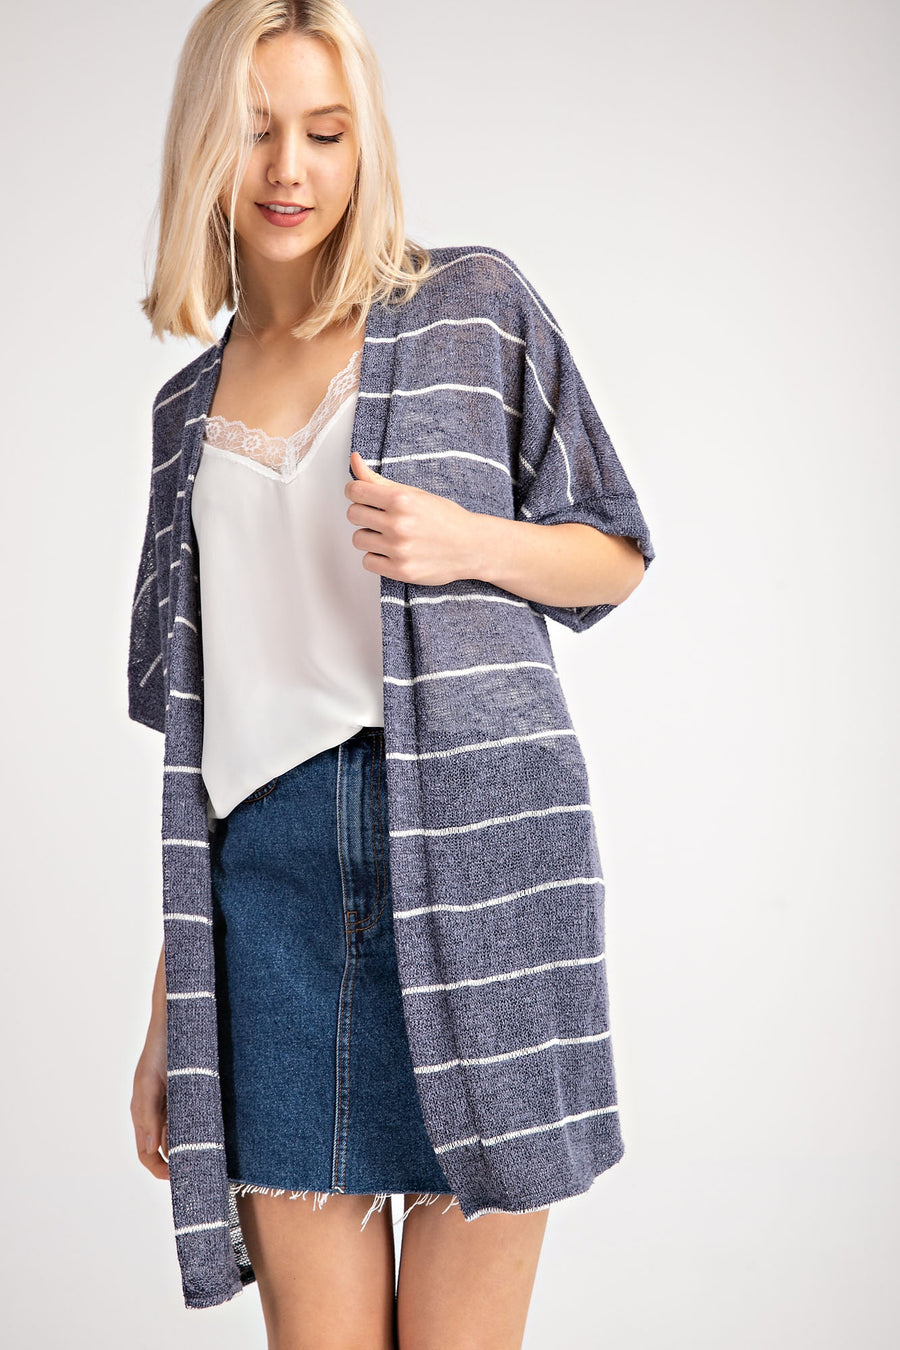 Short Sleeve Knit Cardigan